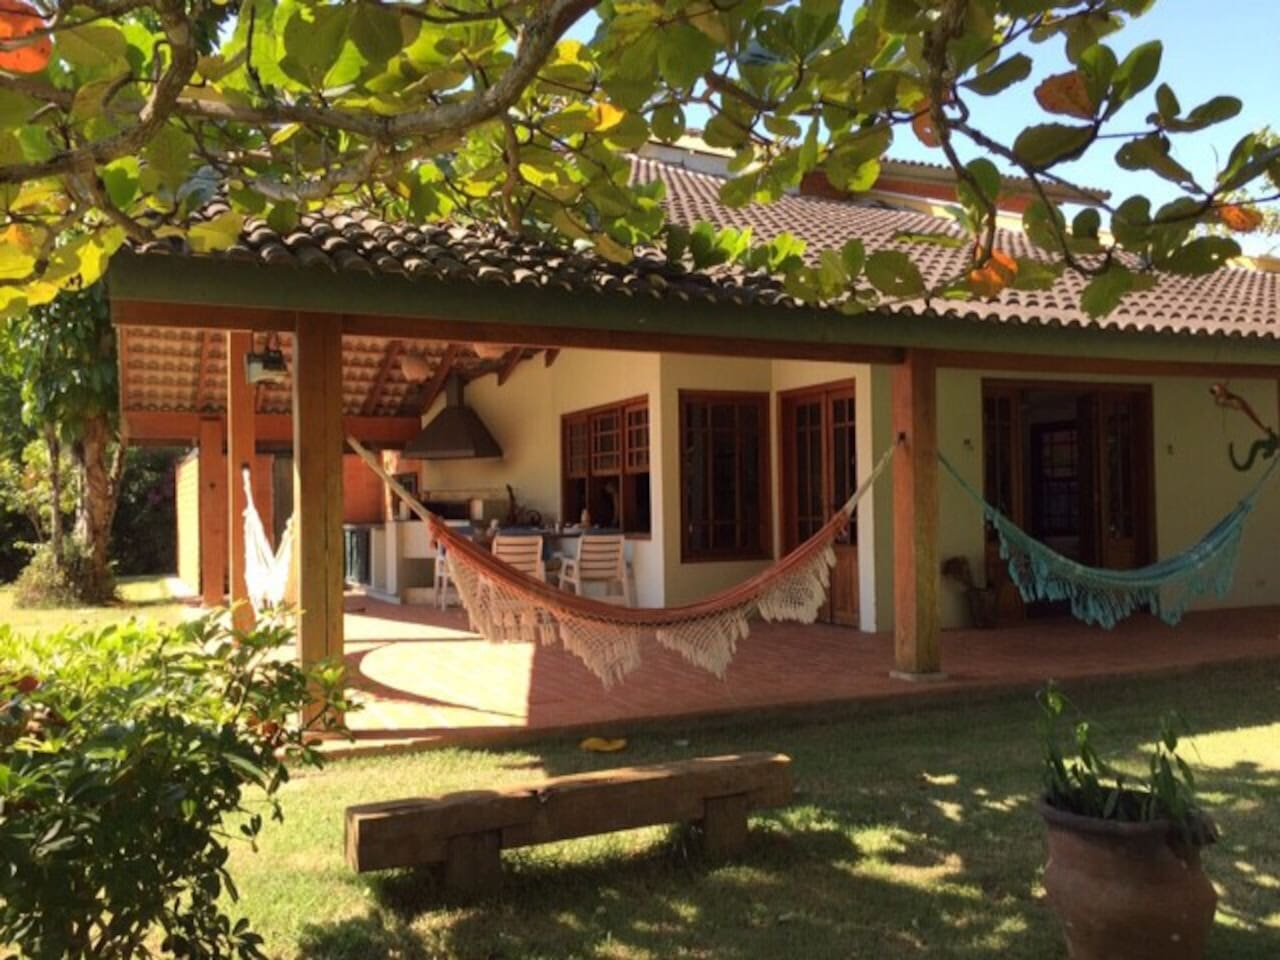 Charming house with hammocks!